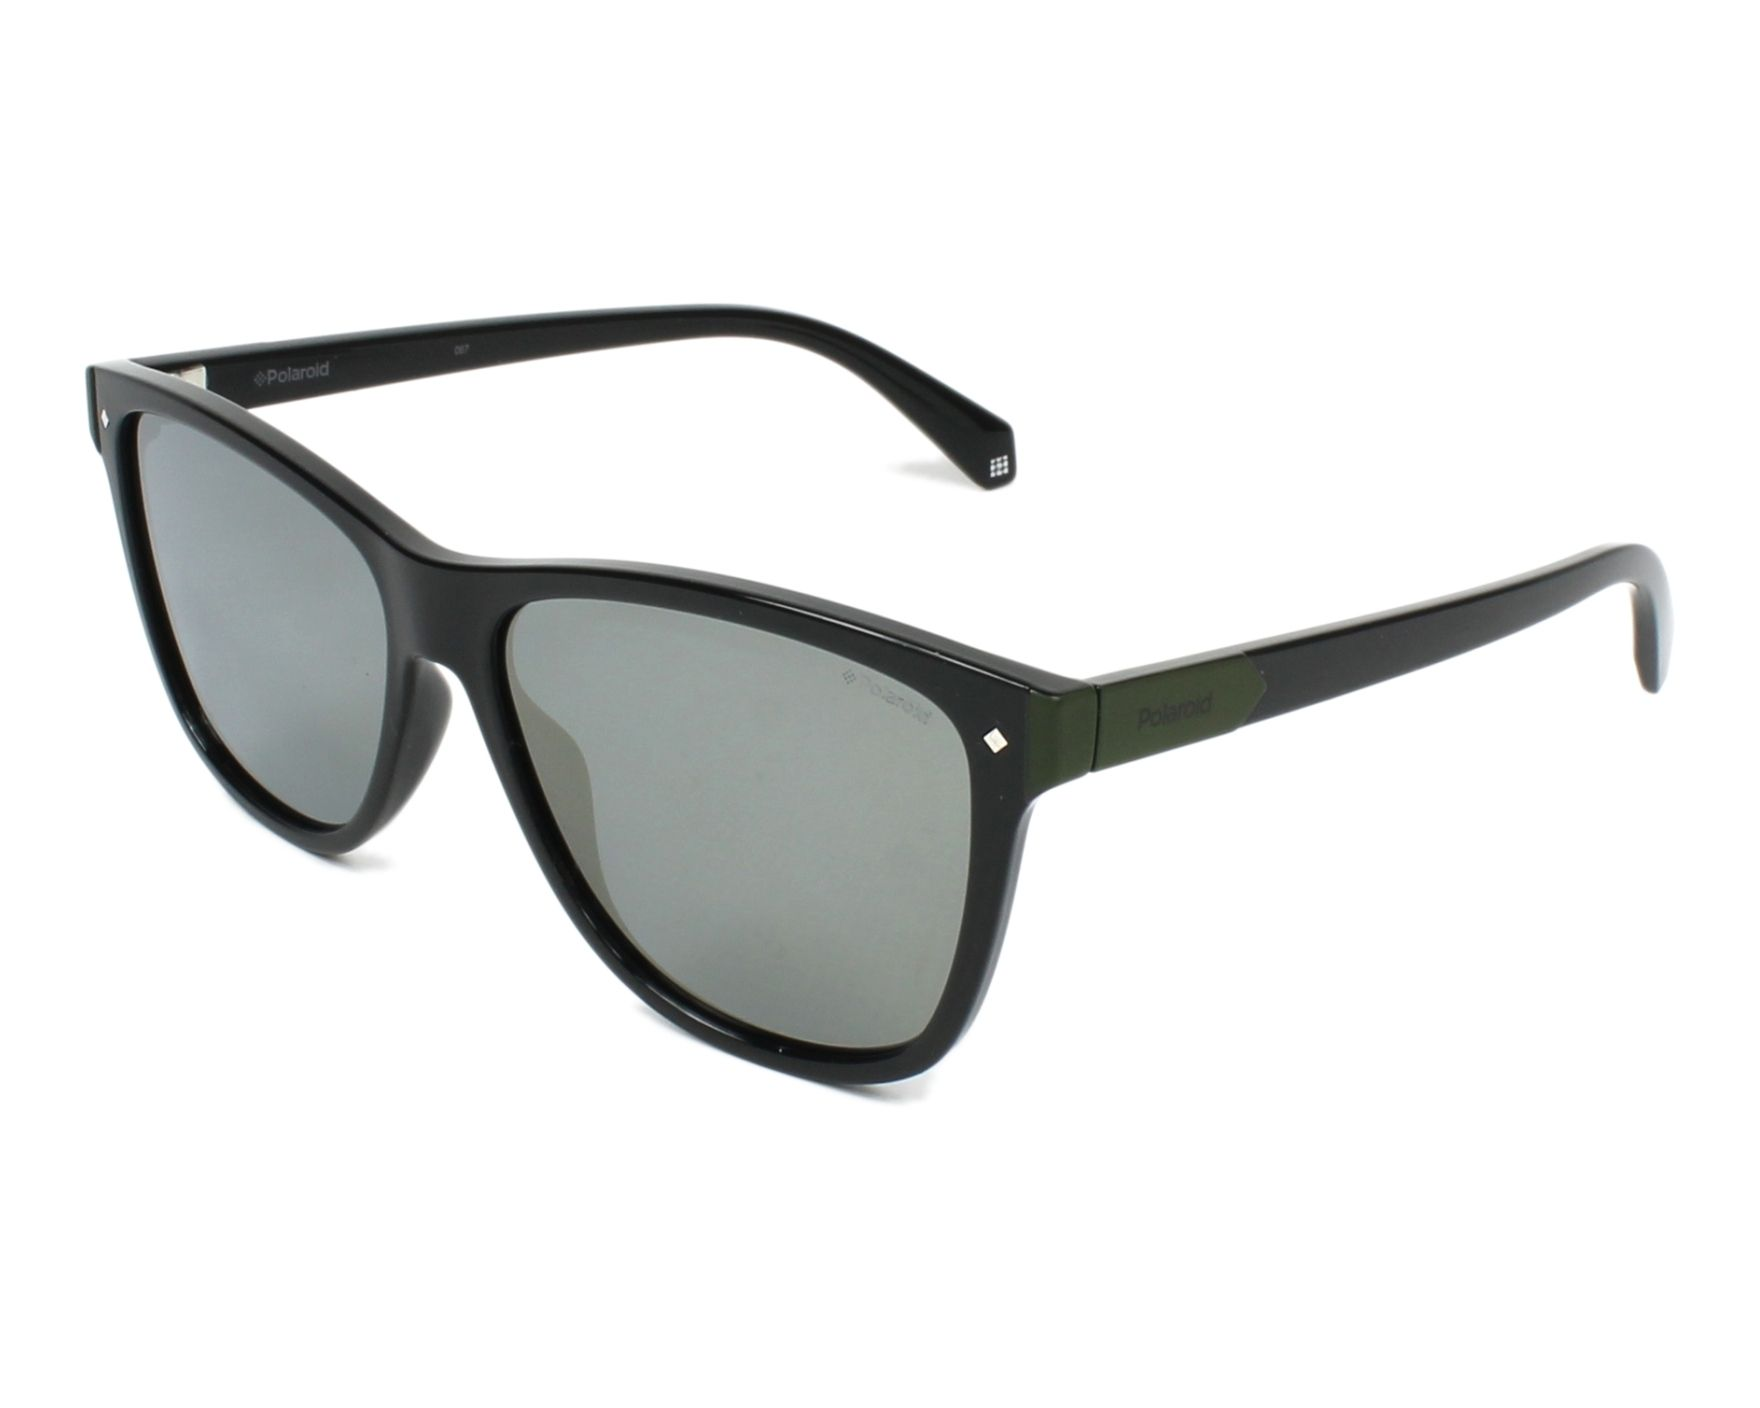 Polarized. Sunglasses Polaroid PLD-6035-S 807 LM 56-15 Black Green profile f41cebe08b8